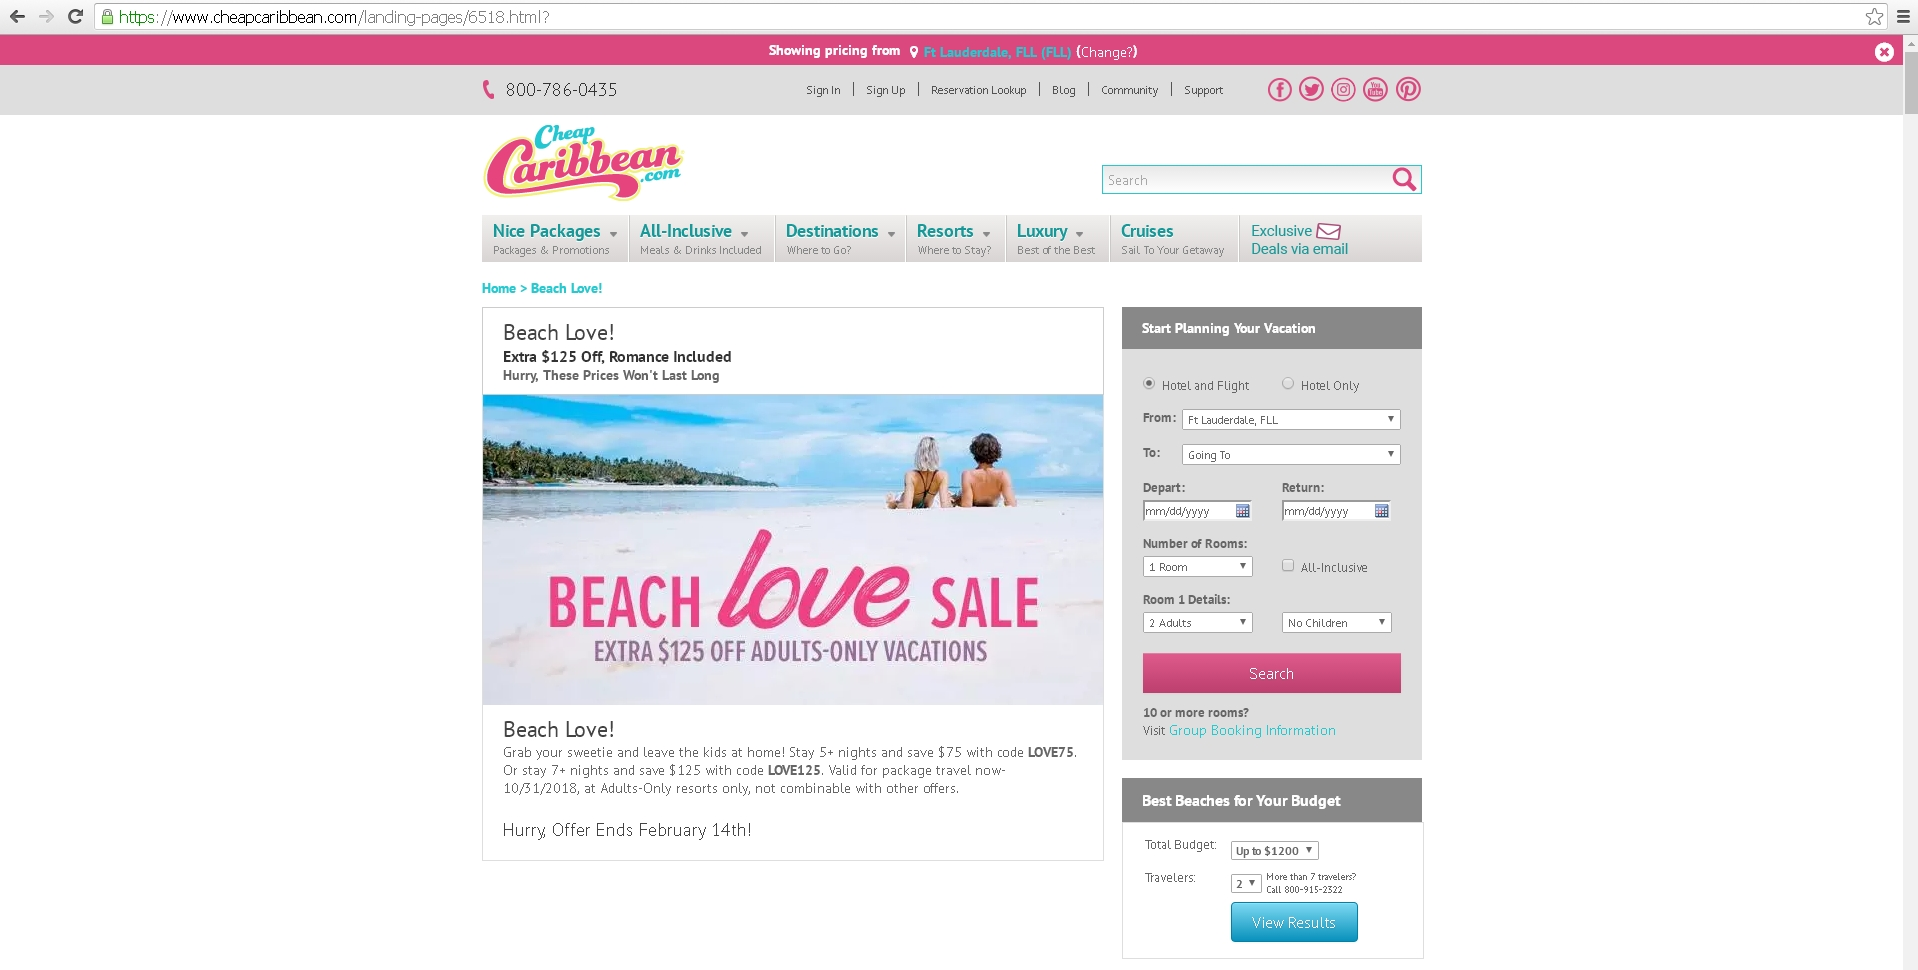 Cheap caribbean coupon codes